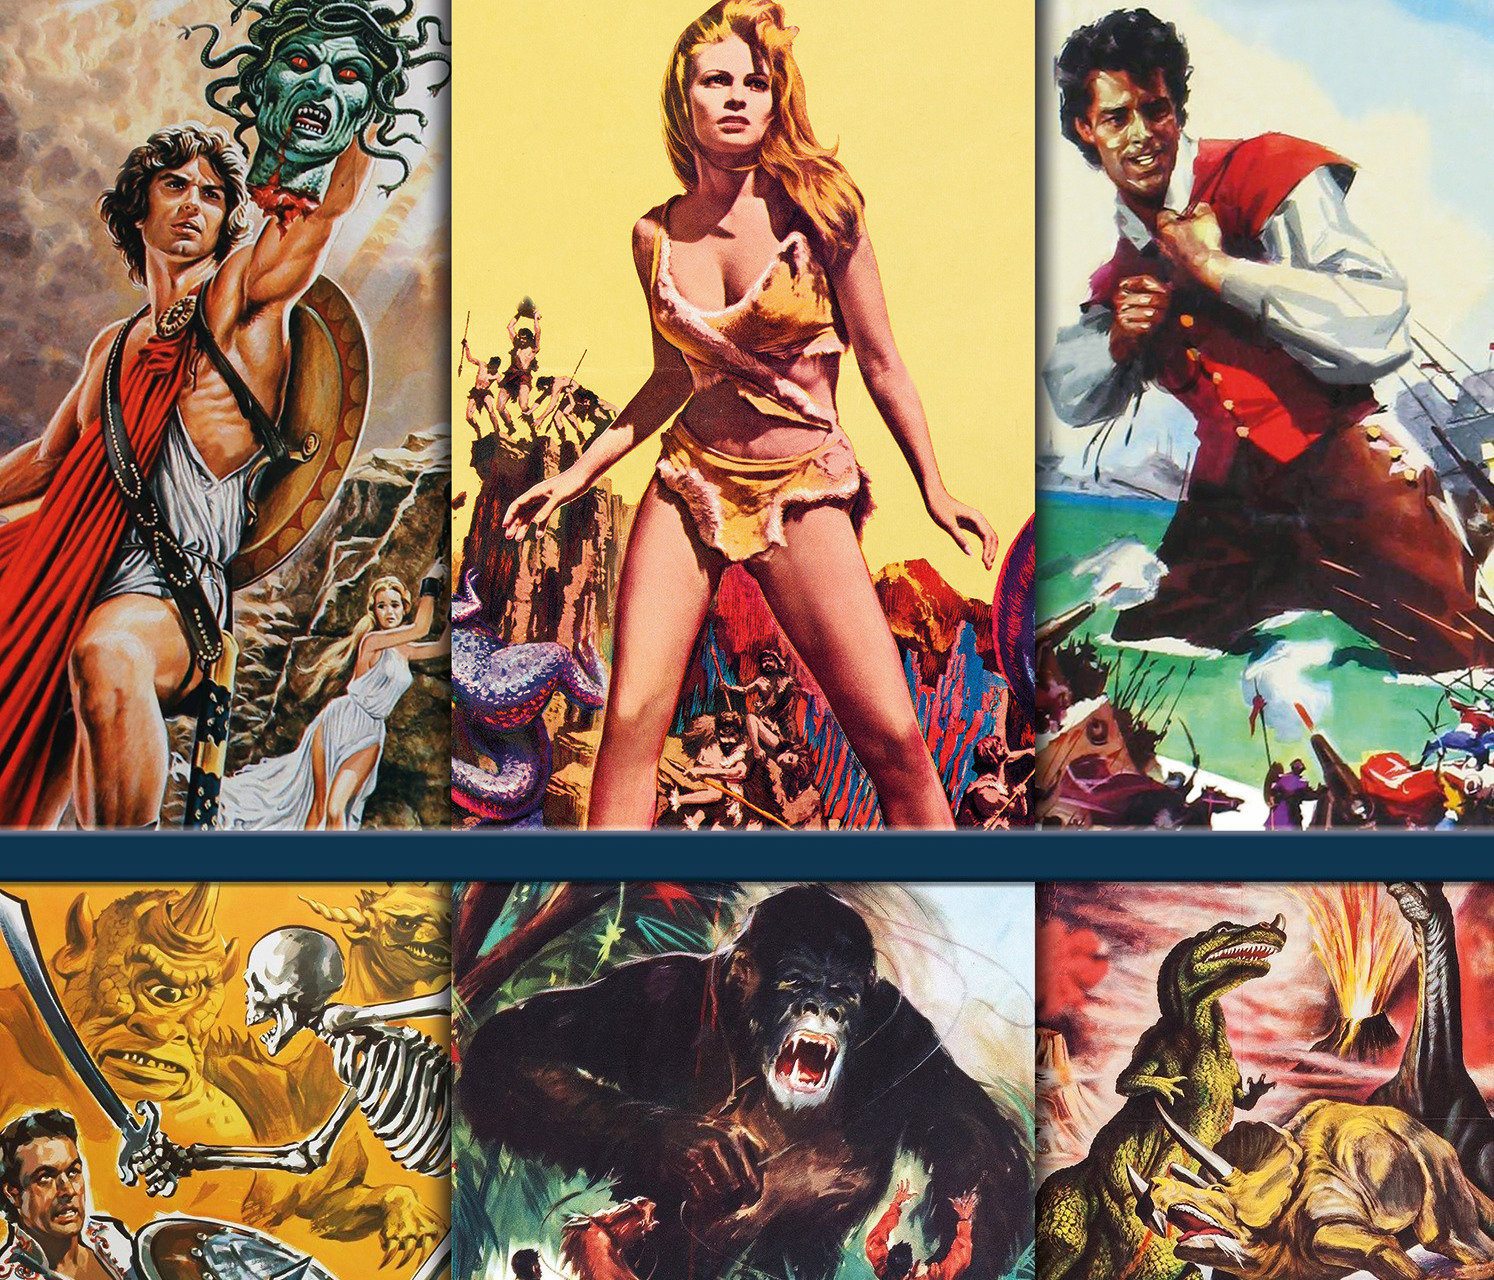 Harryhausen: The Movie Posters gives readers a slice of history